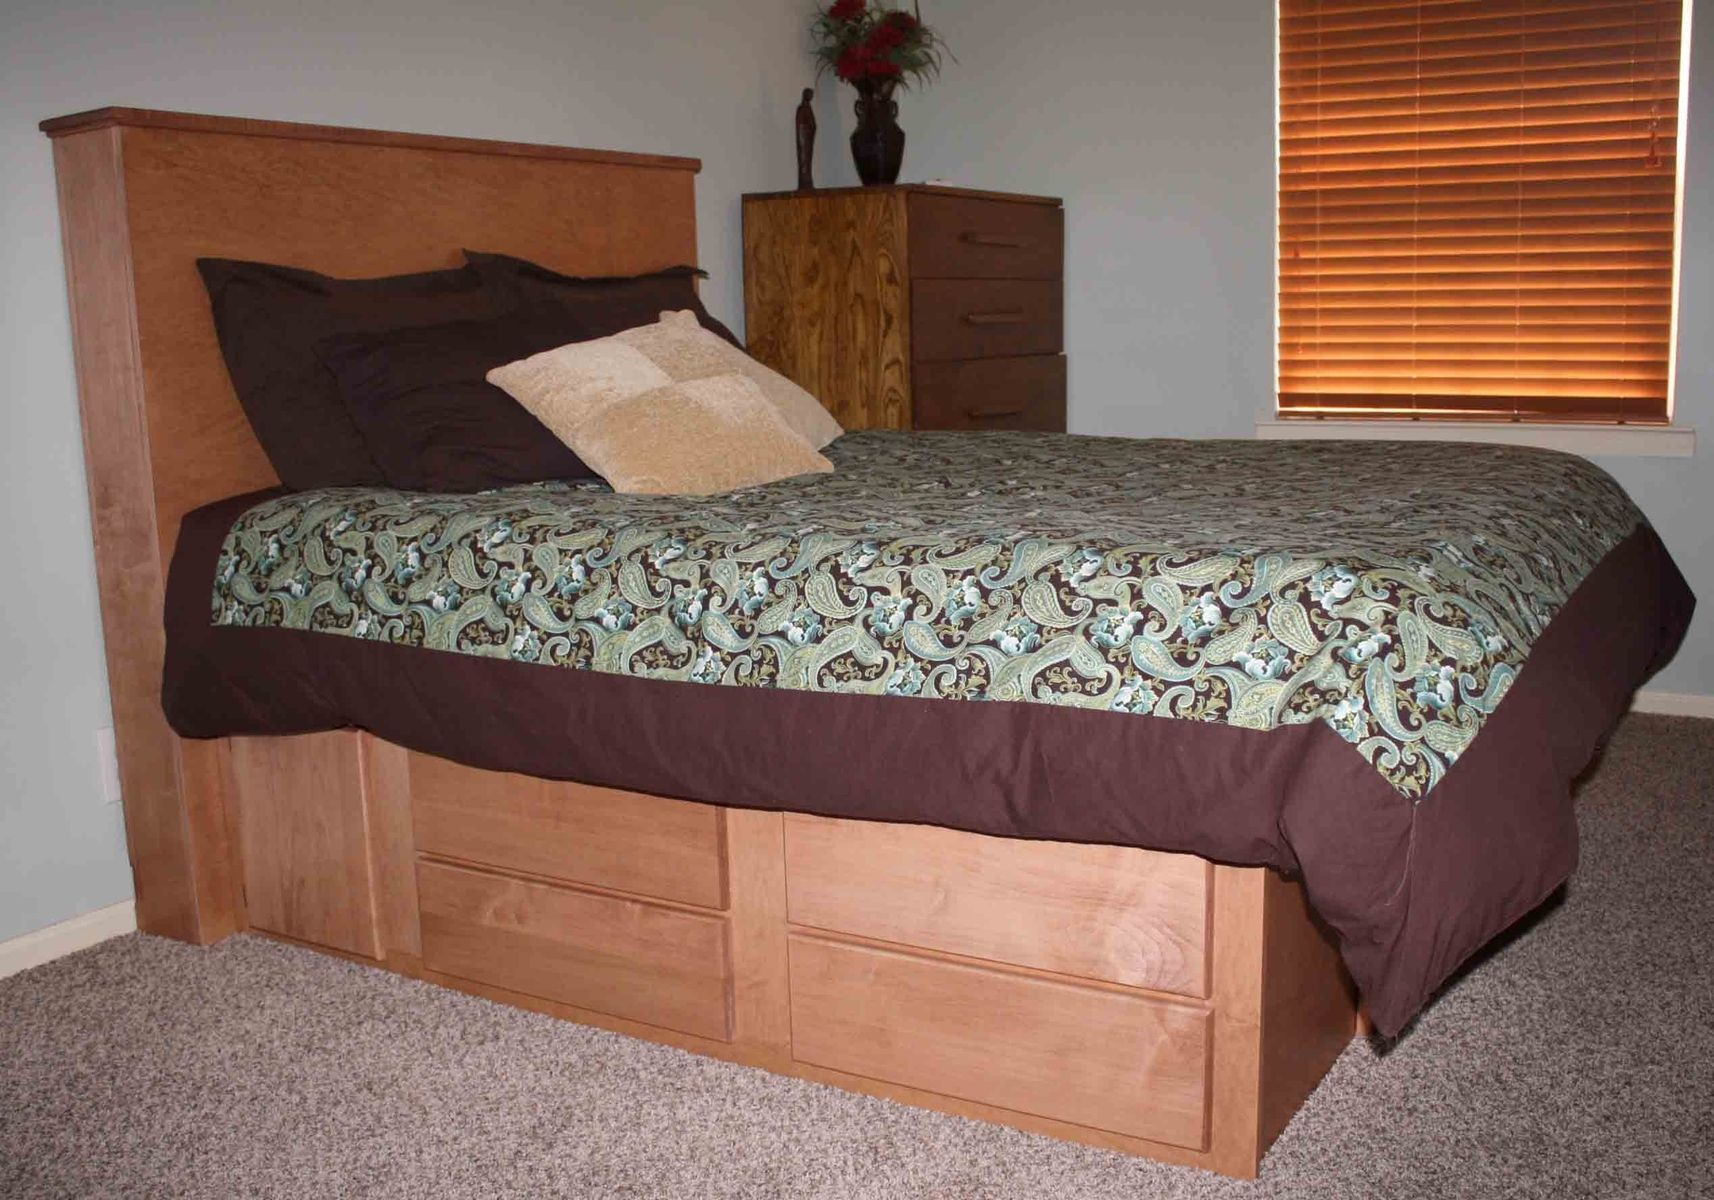 Hand crafted gun bed with hidden compartment by wwbeds for Furniture w hidden compartments